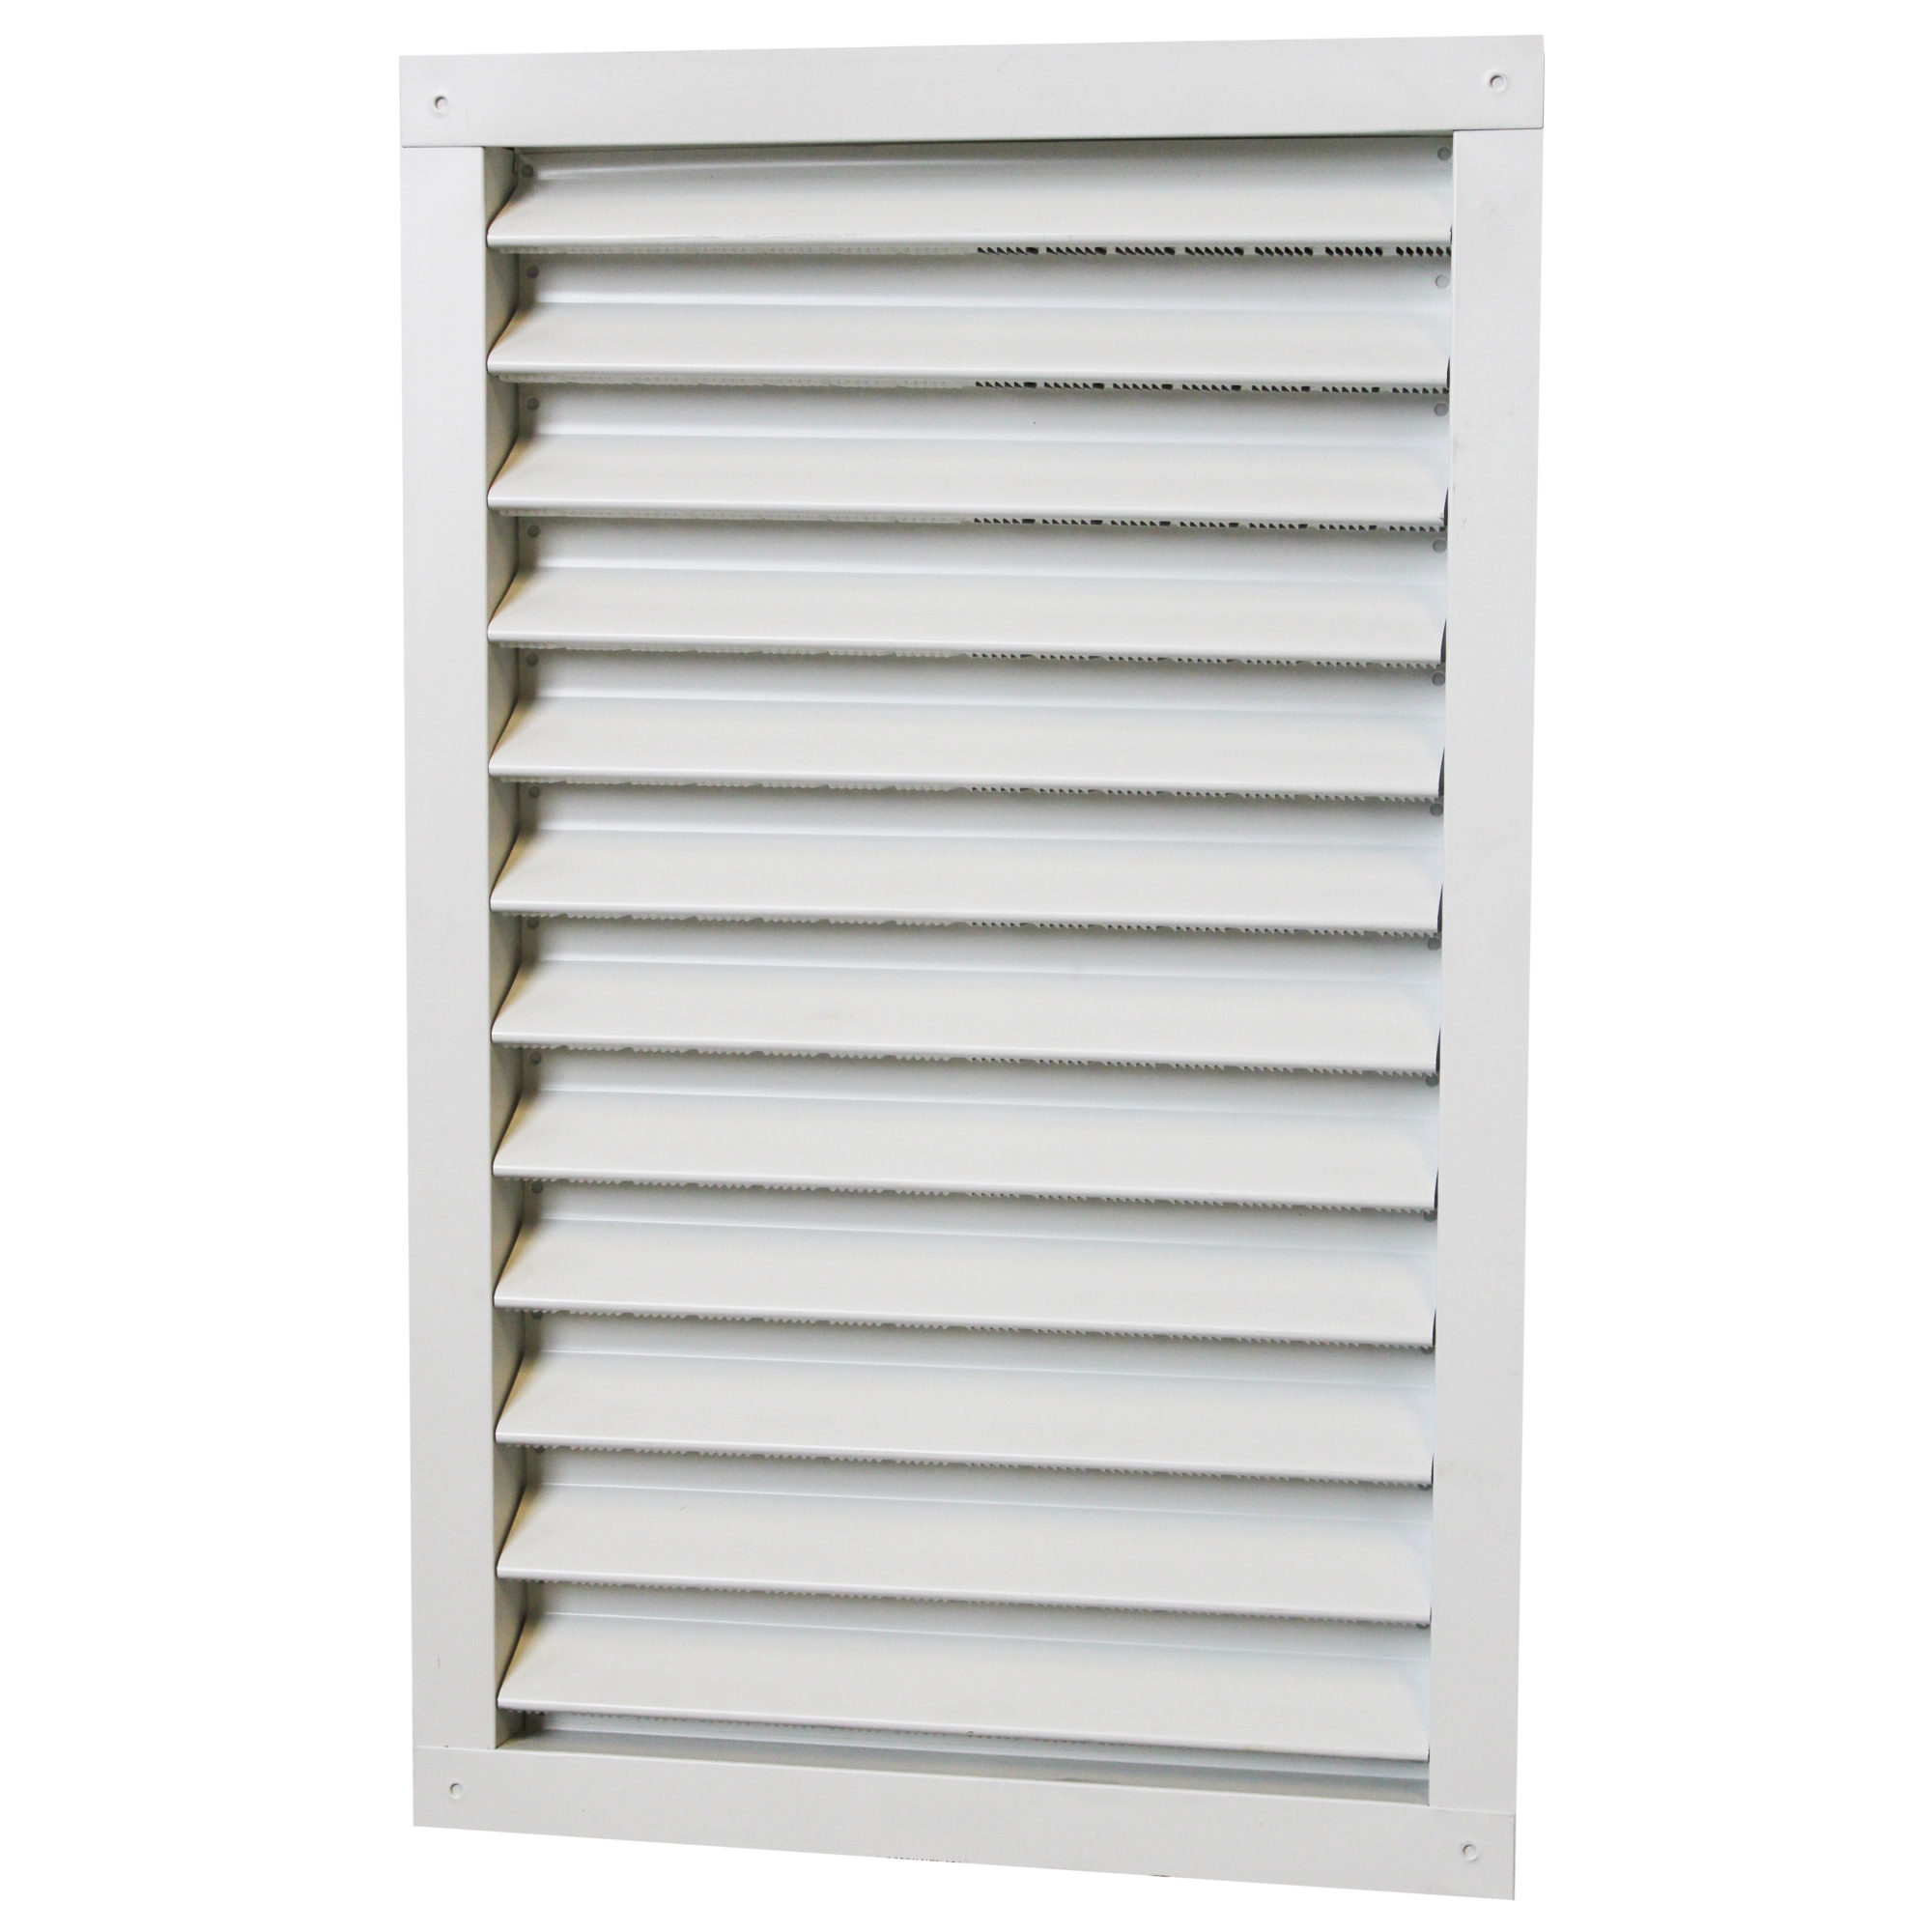 RECTANGULAR WALL LOUVER (1424LW) WHITE